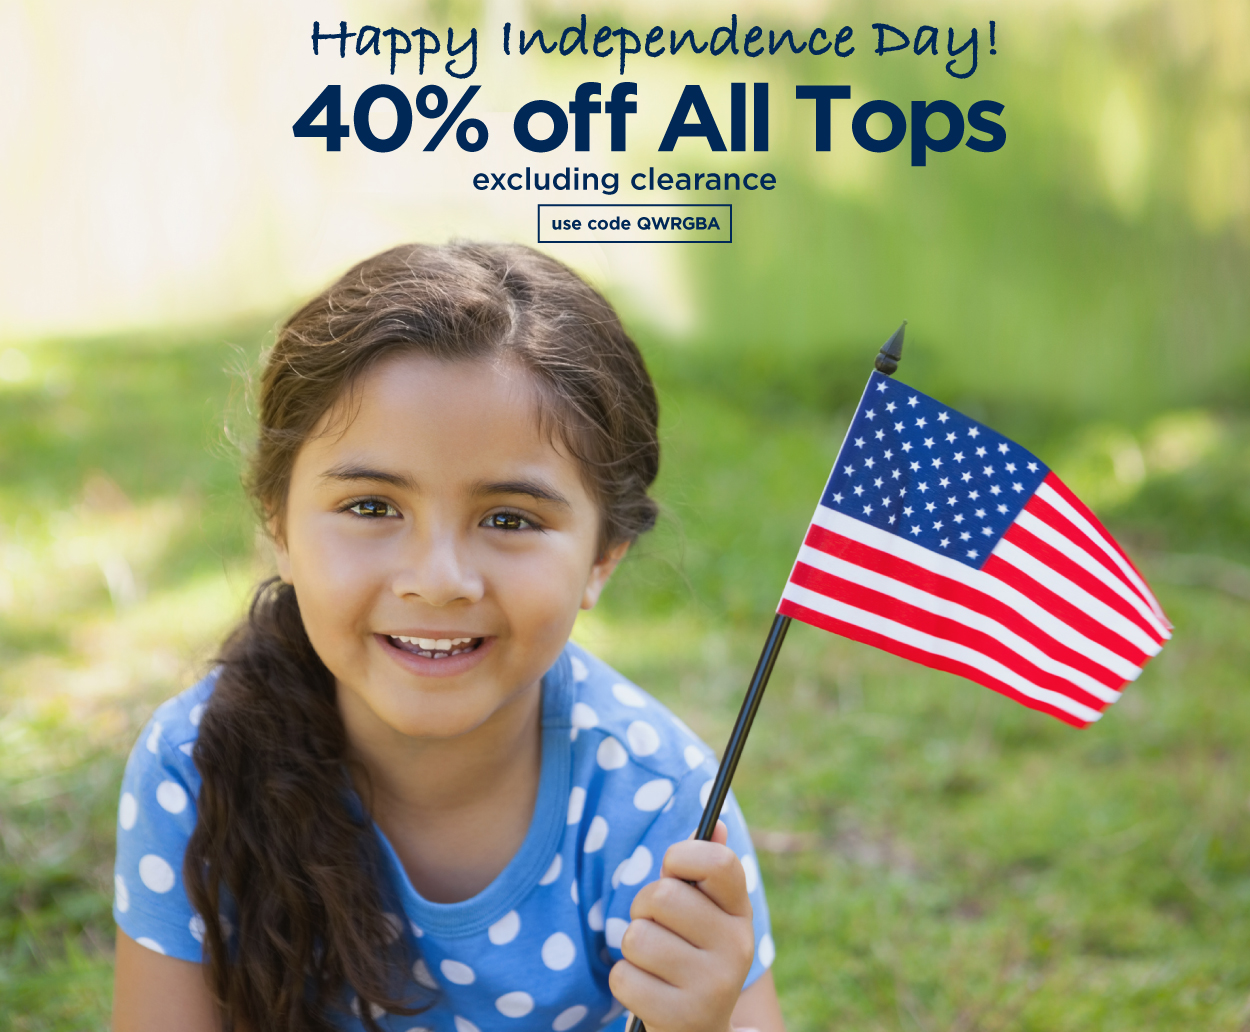 SAVE 40% OFF TOPS